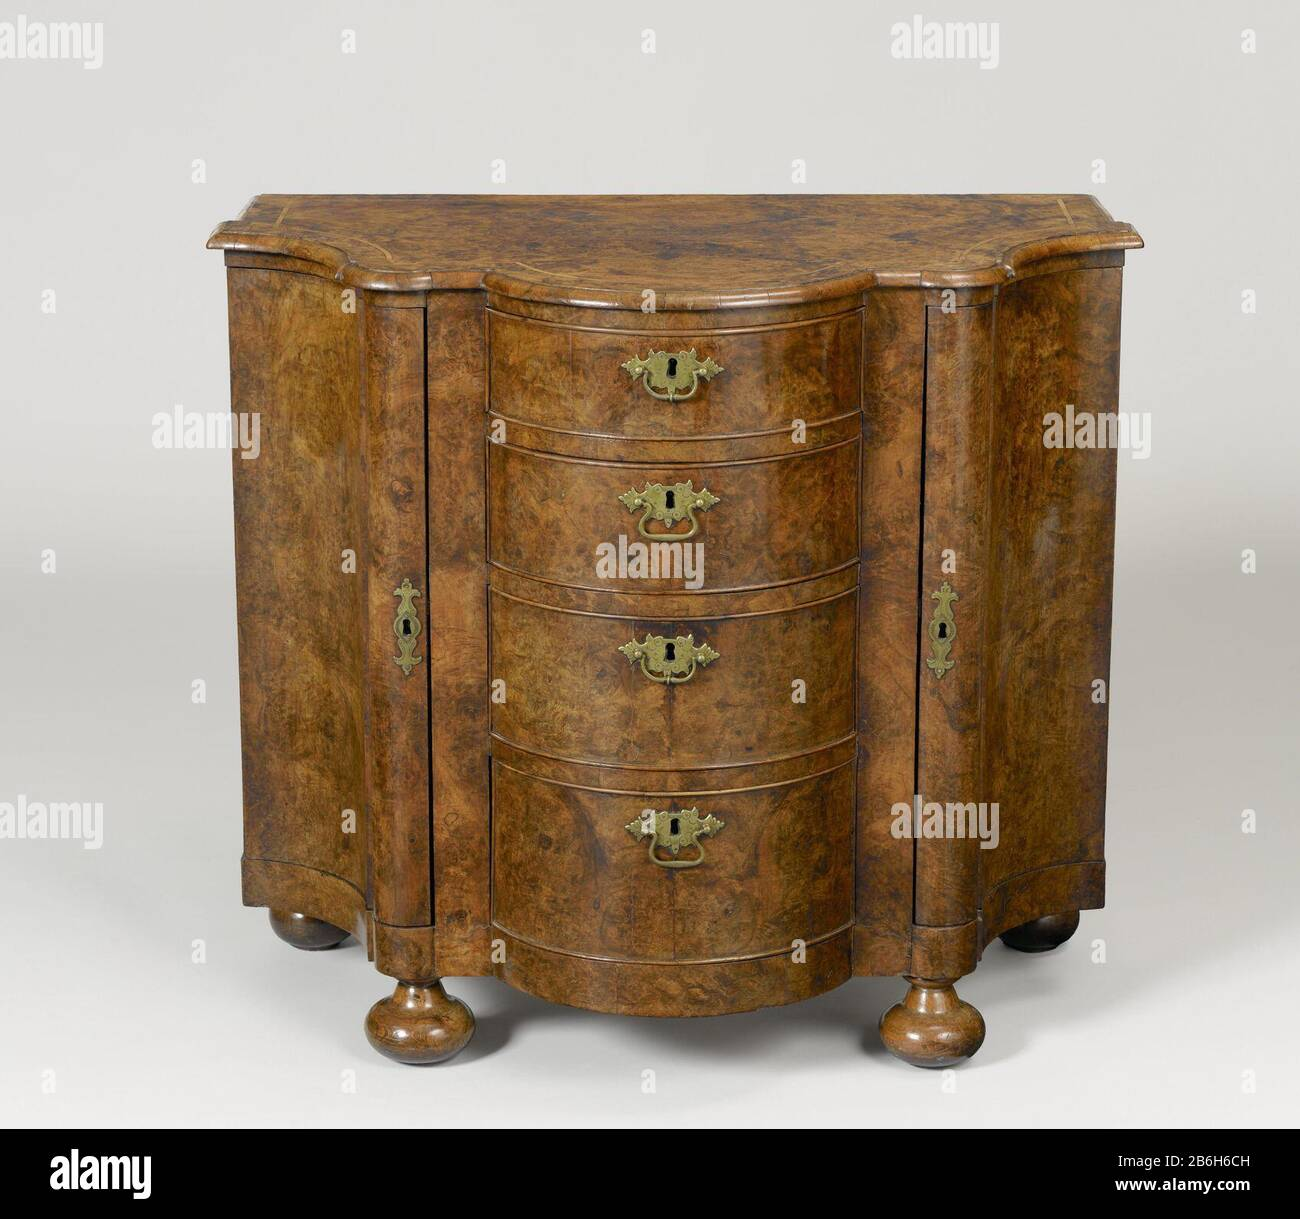 Onwijs Four Drawers Stock Photos & Four Drawers Stock Images - Alamy YJ-82